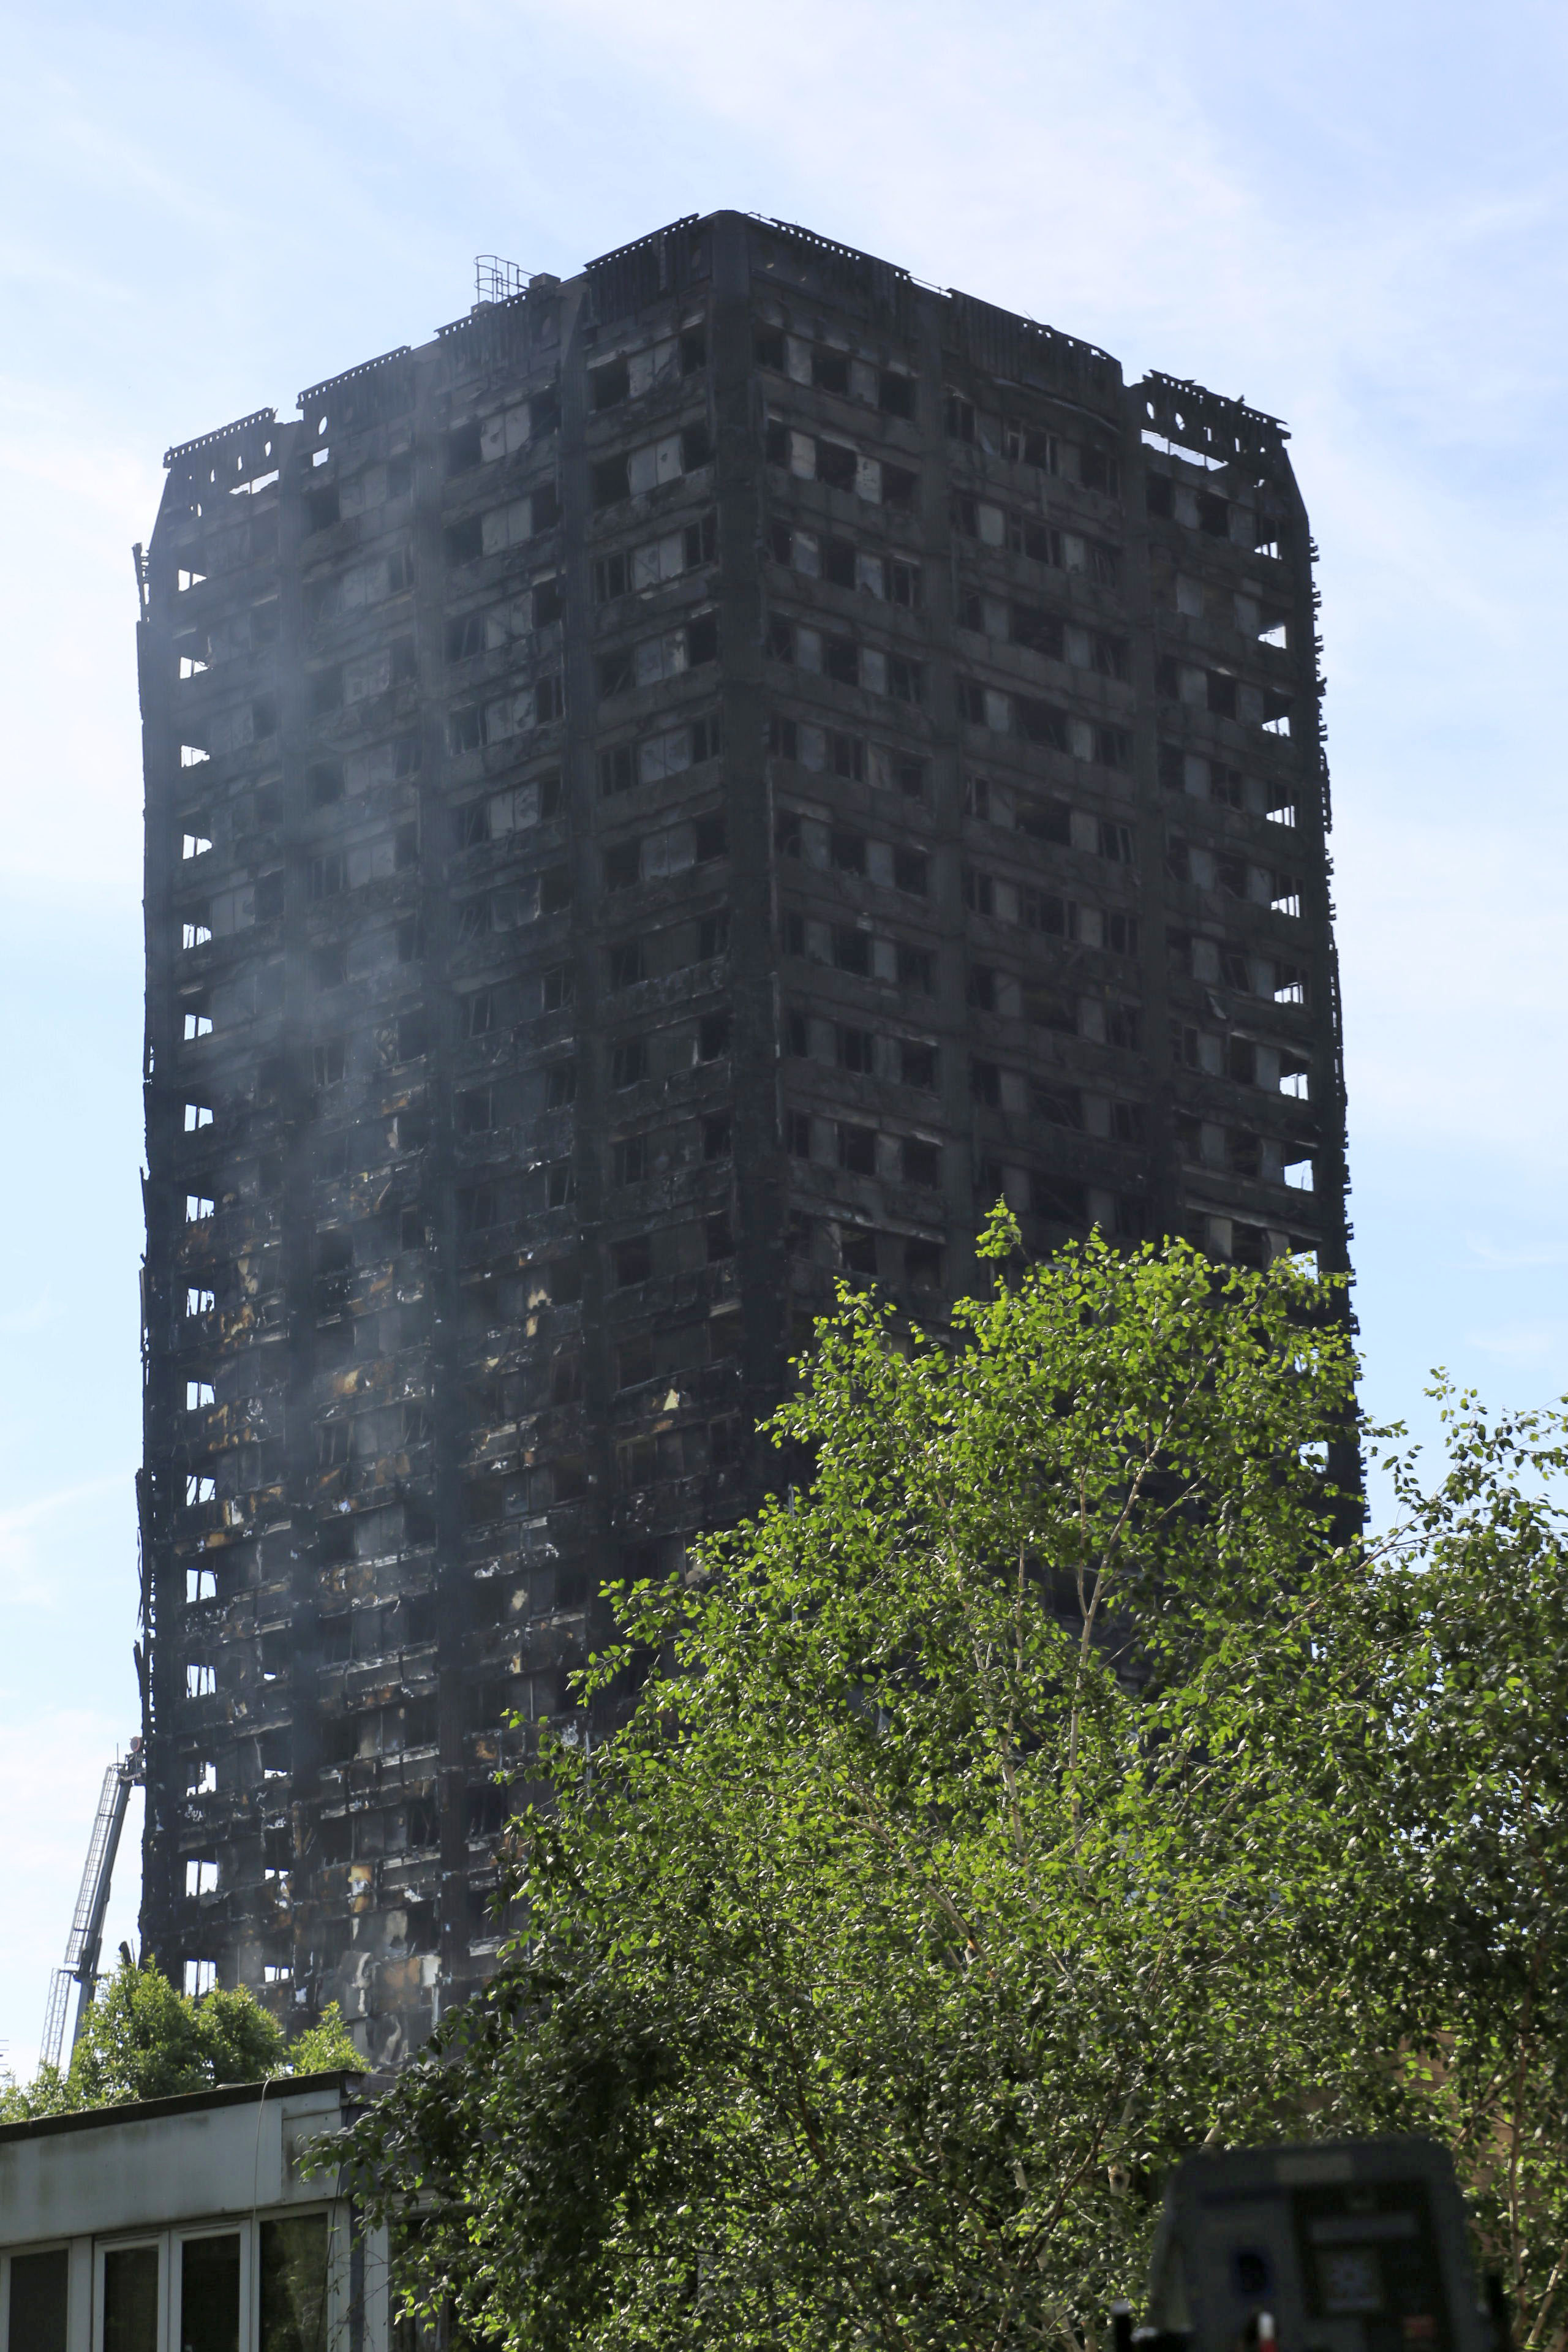 Death toll from London tower block fire reaches 17